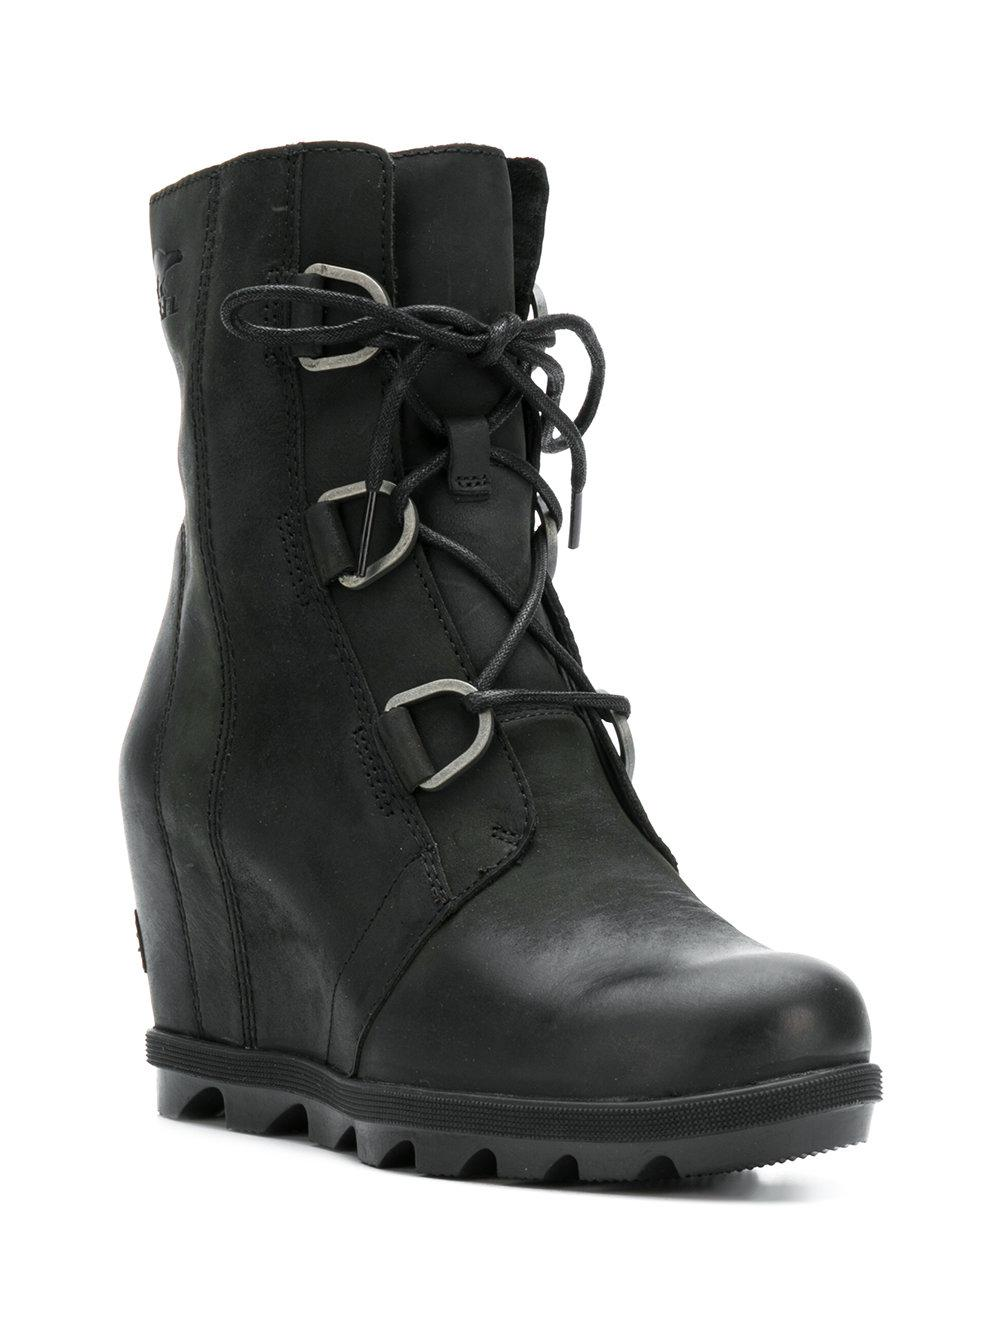 143fc474f77b Sorel - Black Ankle Lace-up Boots - Lyst. View fullscreen